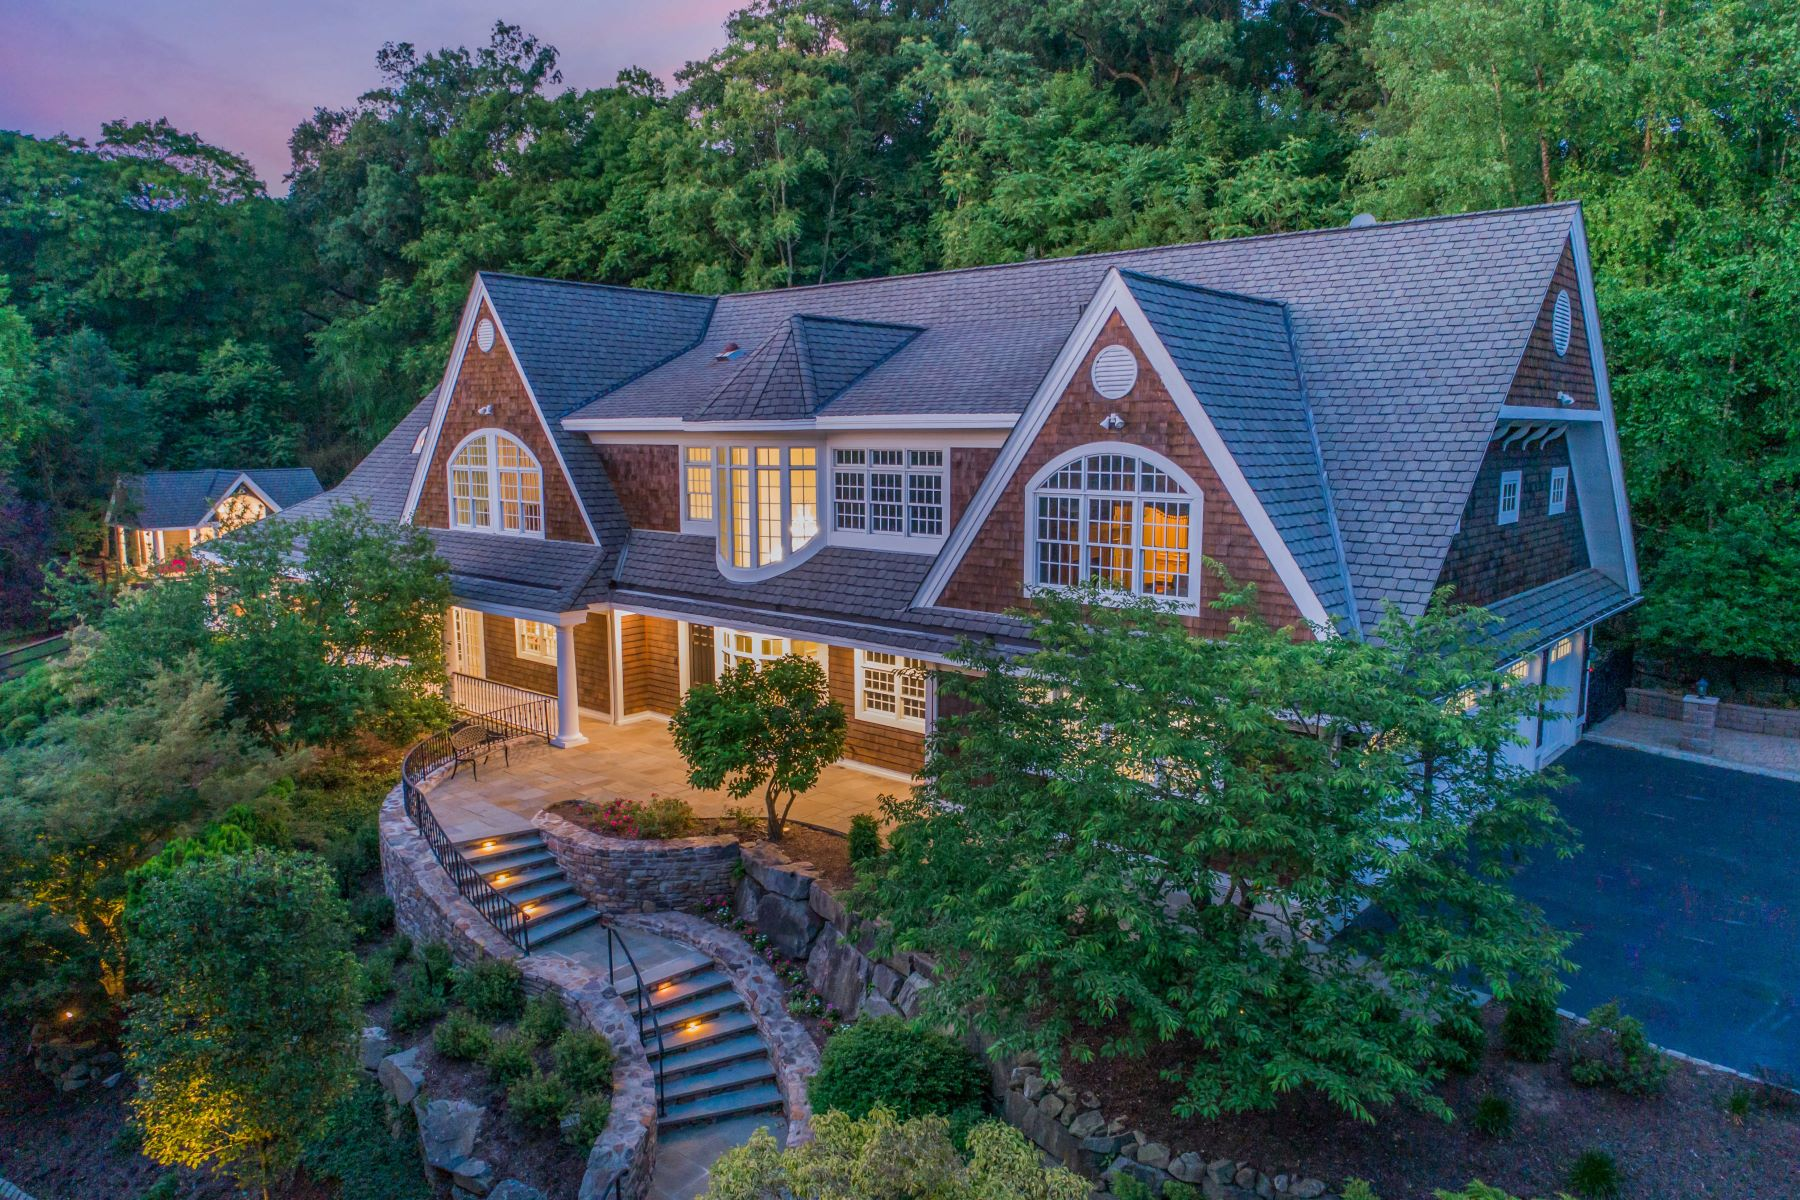 Single Family Homes for Sale at 3 ACRE COMPOUND 34 E Saddle River Rd Saddle River, New Jersey 07458 United States